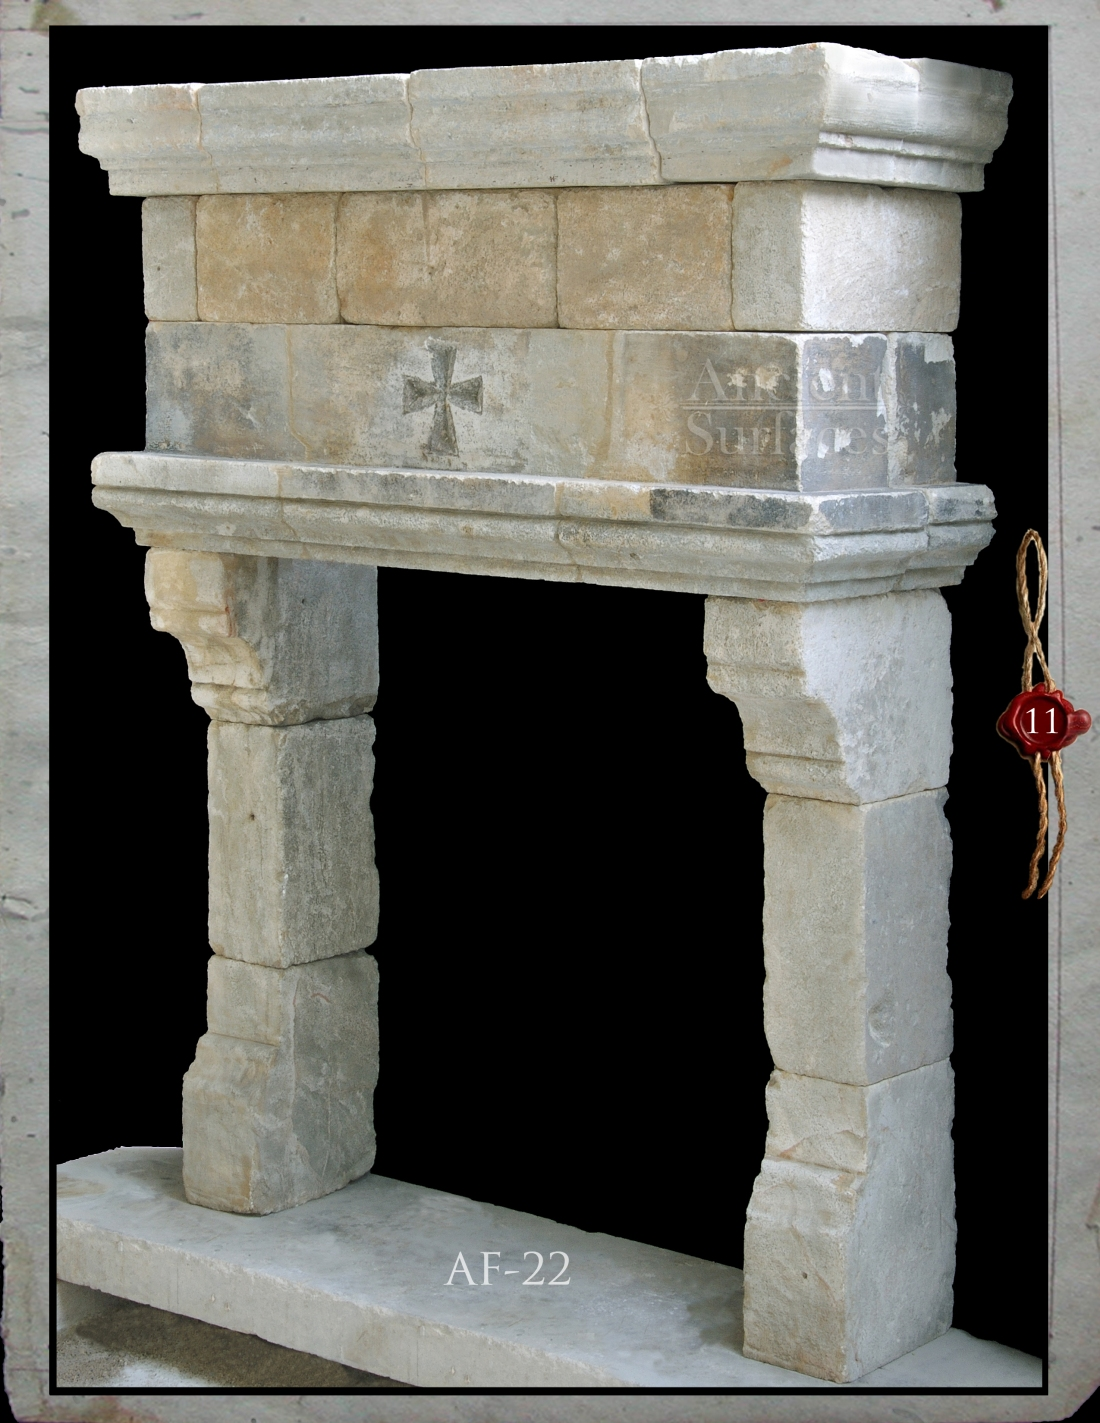 Antique Limestone Fireplace Circa 14th century